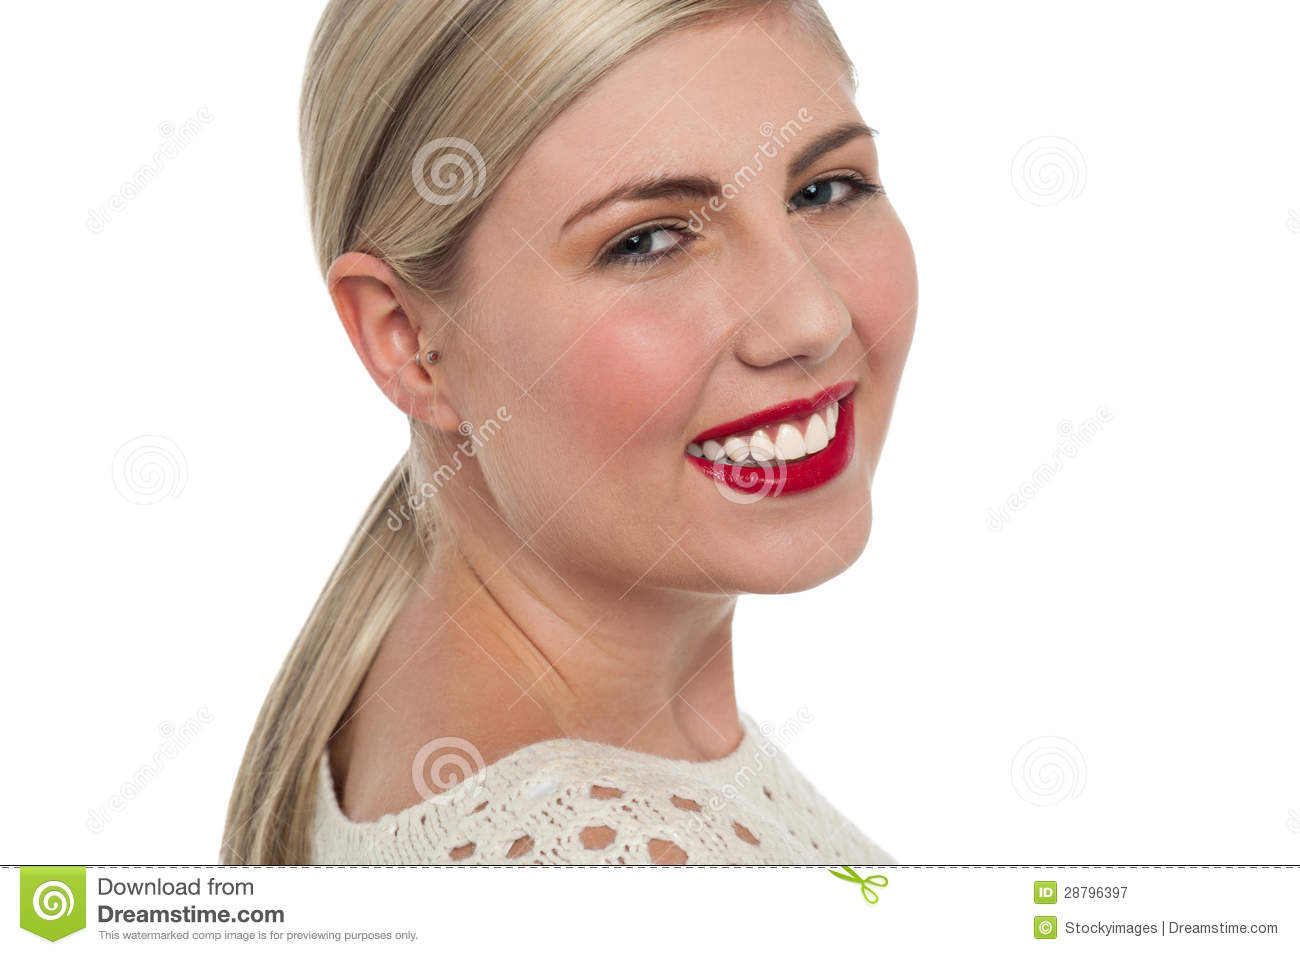 Charming teen model flashing toothy smile royalty free stock photography image 28796397 - Charming teenage girls image ...